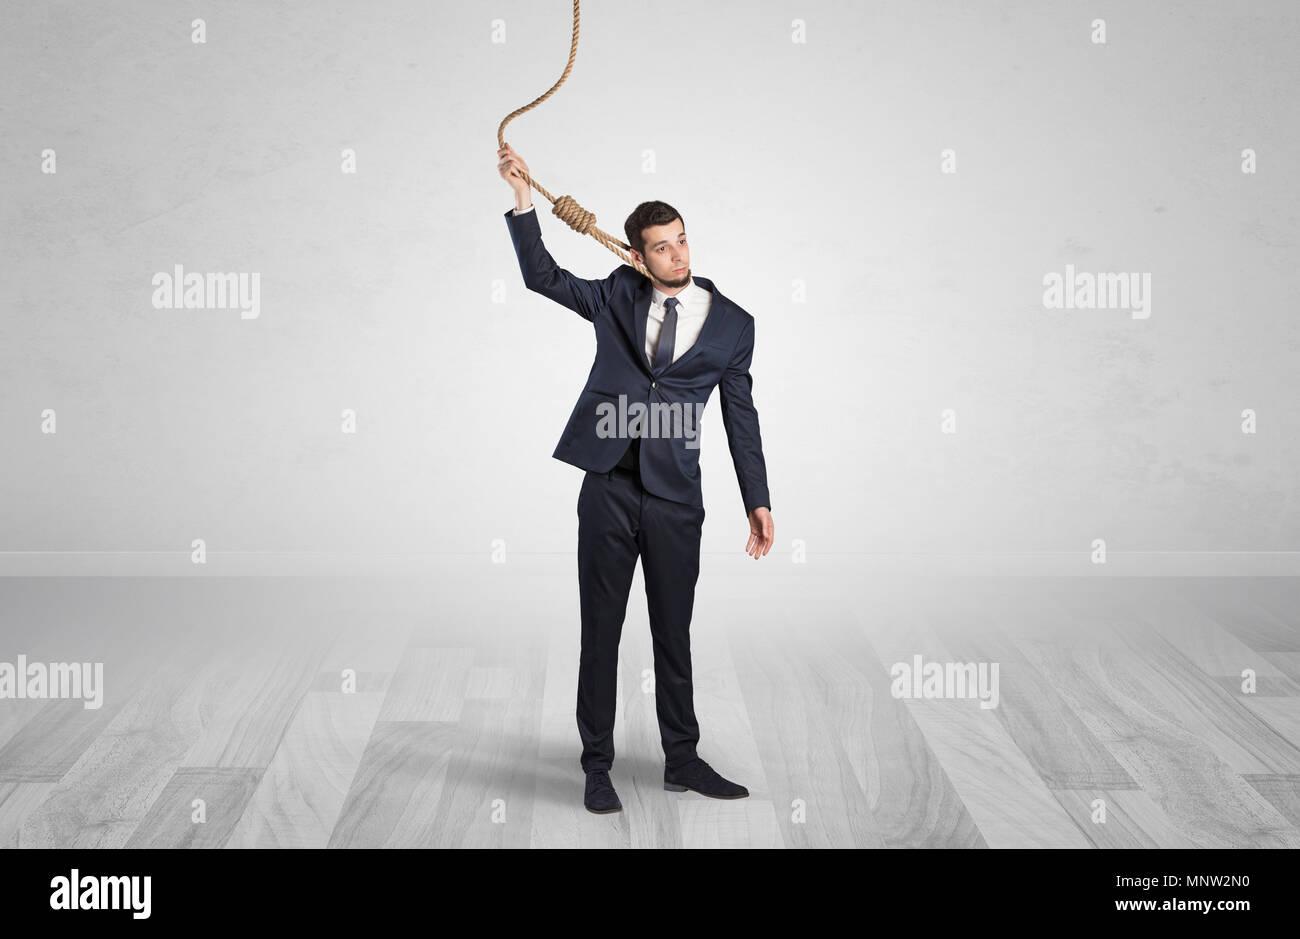 Young responsable man on the verge of suicide  - Stock Image